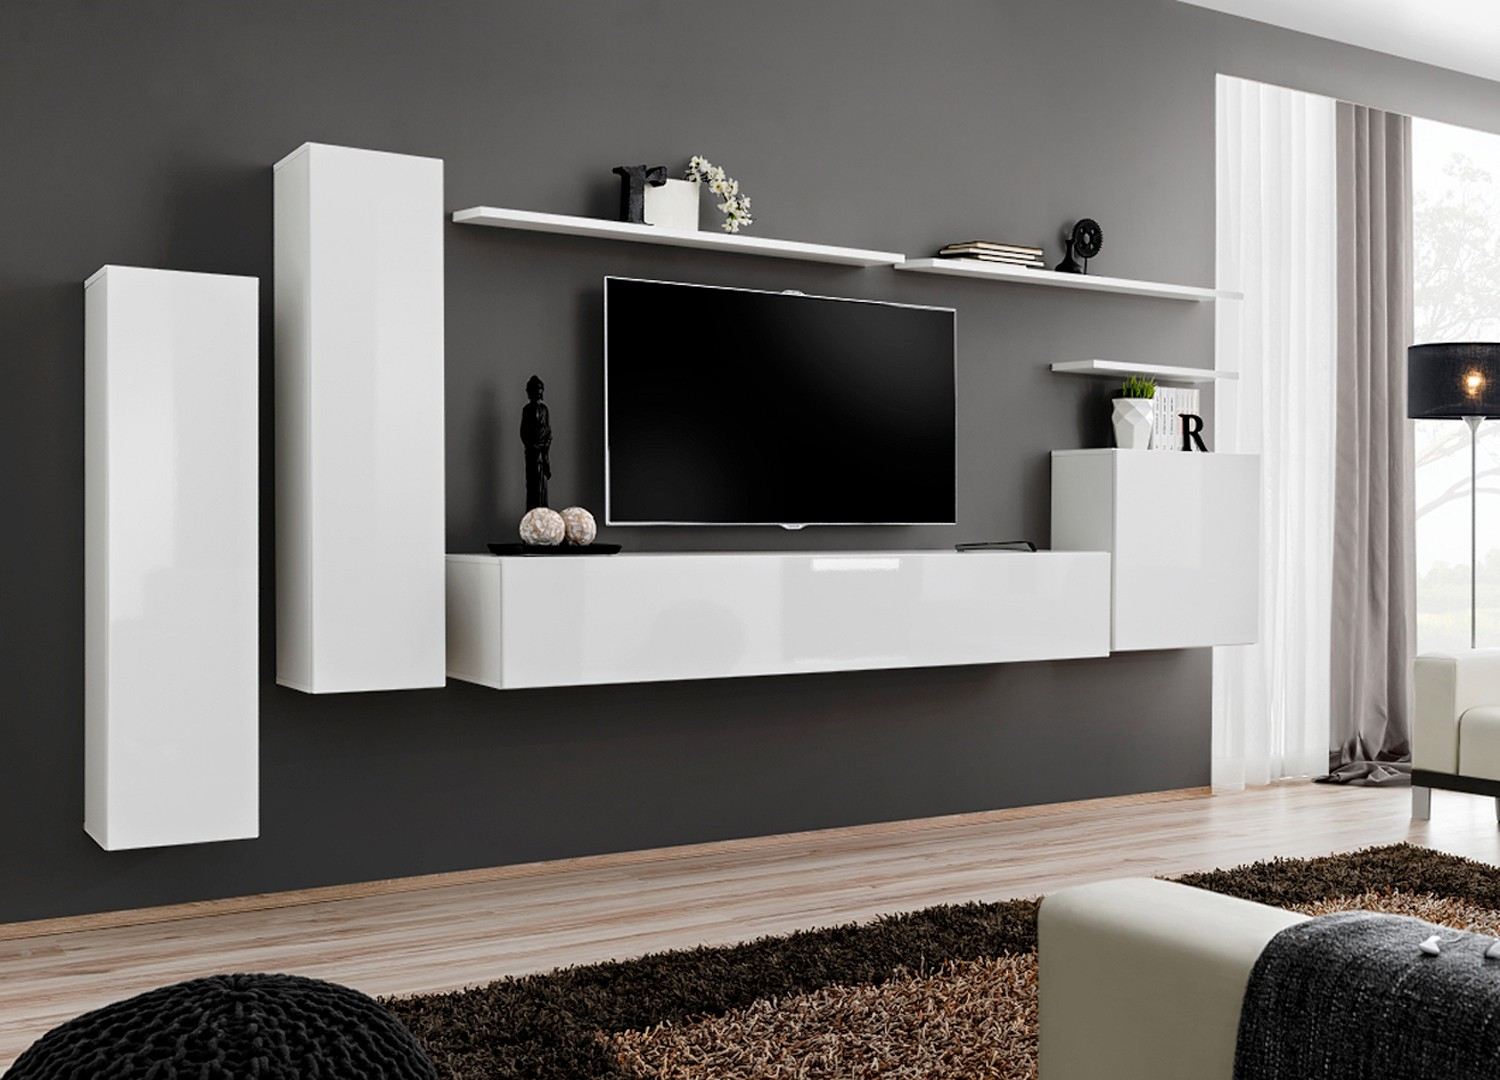 meubles suspendus salon meuble suspendu laque moderne. Black Bedroom Furniture Sets. Home Design Ideas